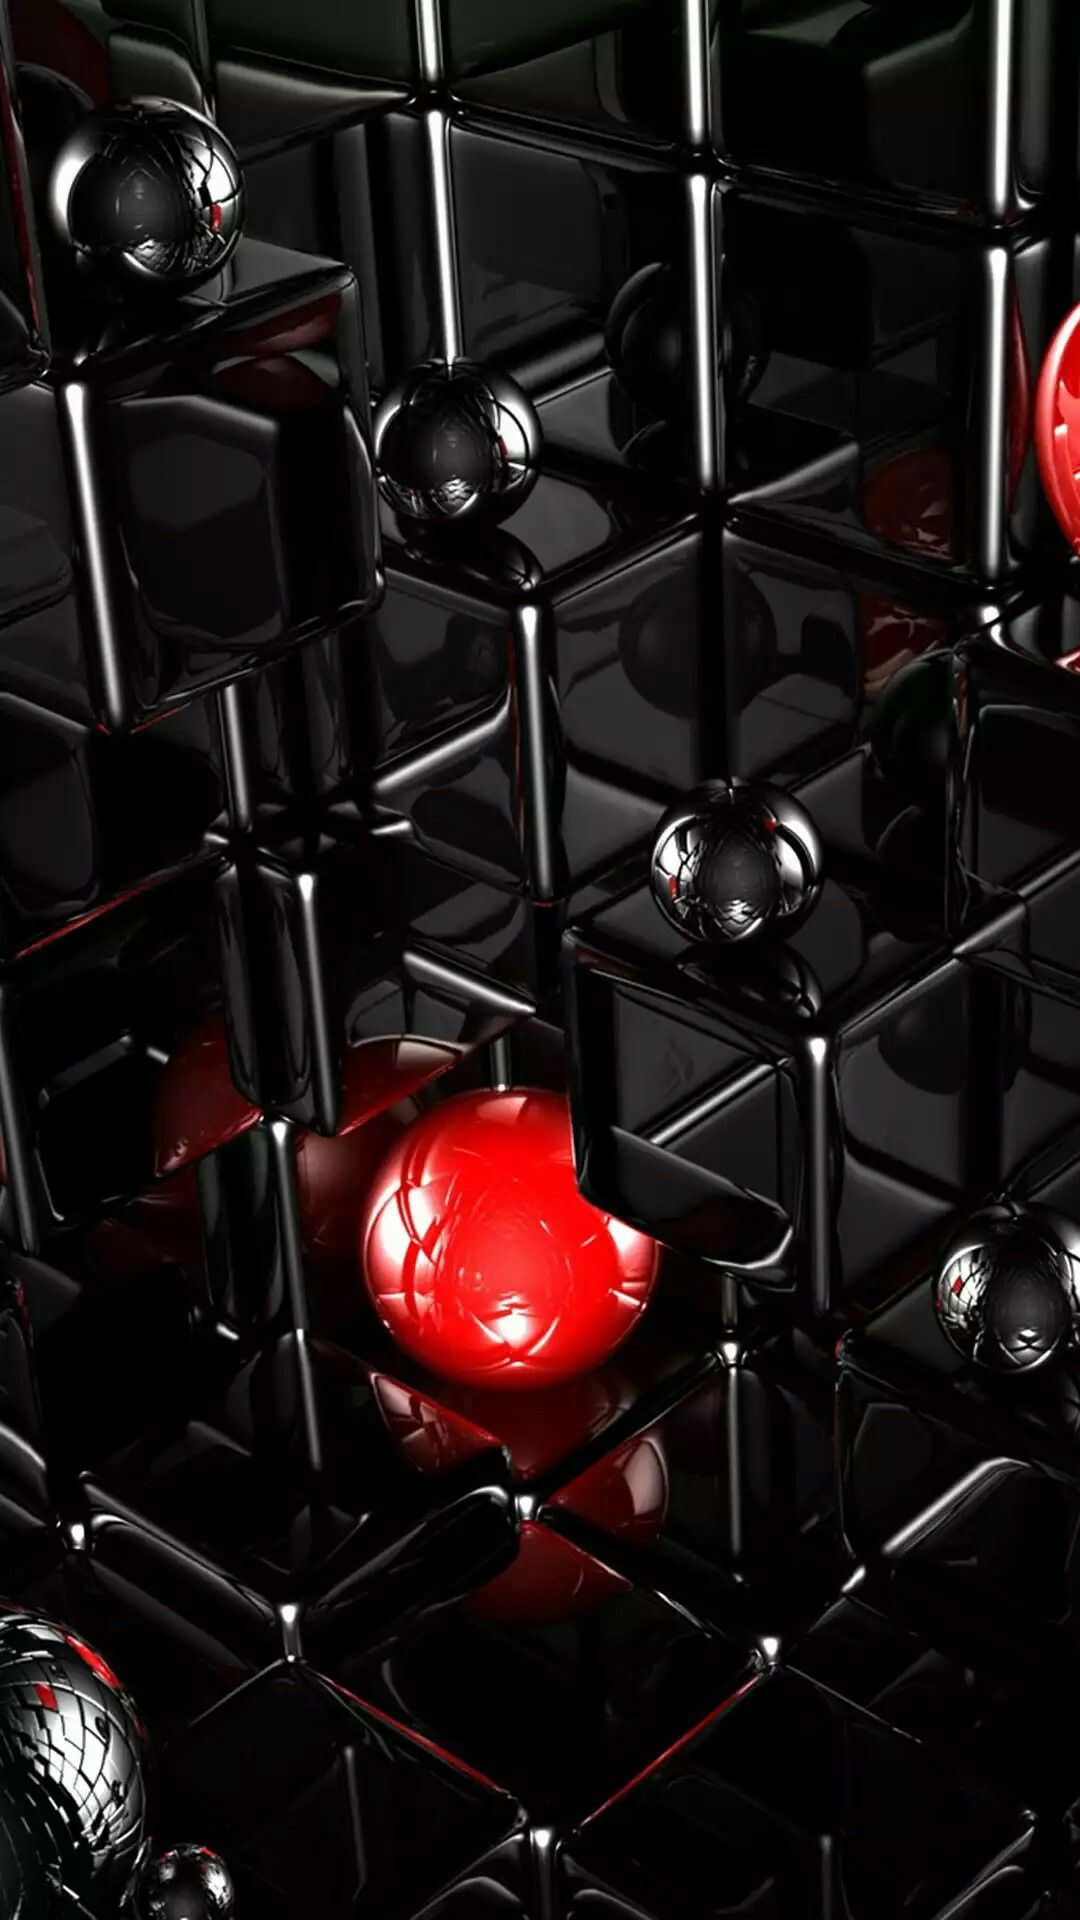 3d Black Cubes And Marbles Wallpaper Smartphone Wallpaper Apple Wallpaper Iphone Wallpaper Pc